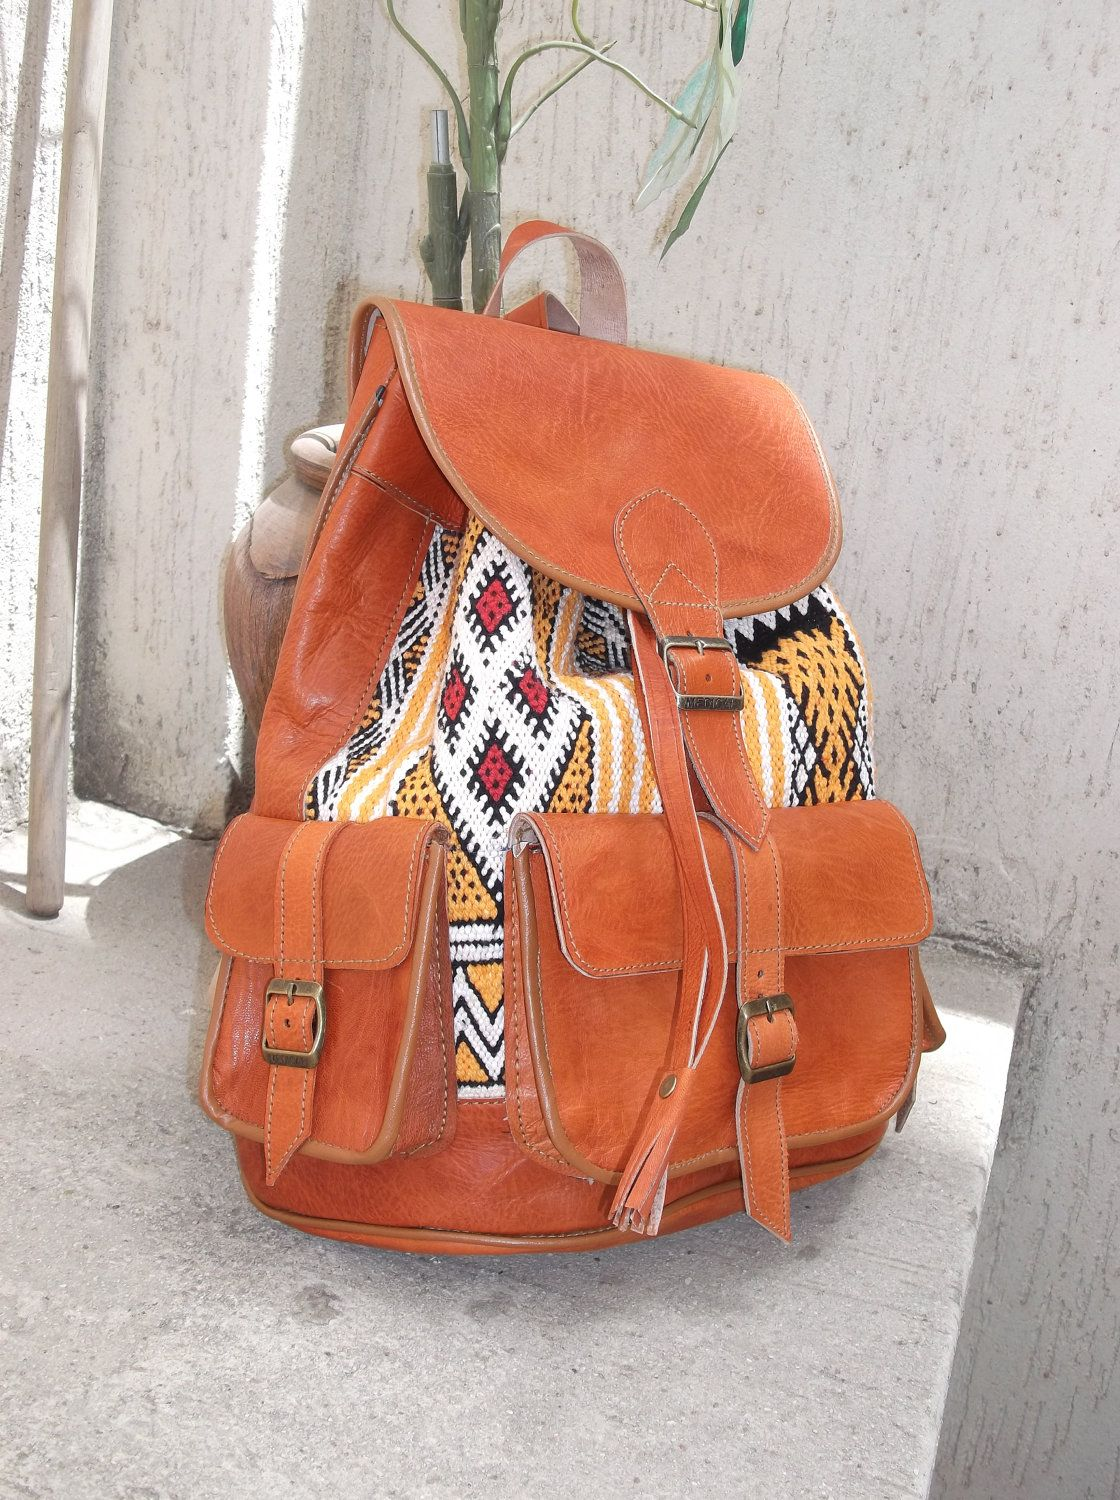 fb179c4052 Moroccan Leather kilim Backpack Rucksack back bag soulder vintage purse  travel kilim bag shoulder women men bag.  79.99